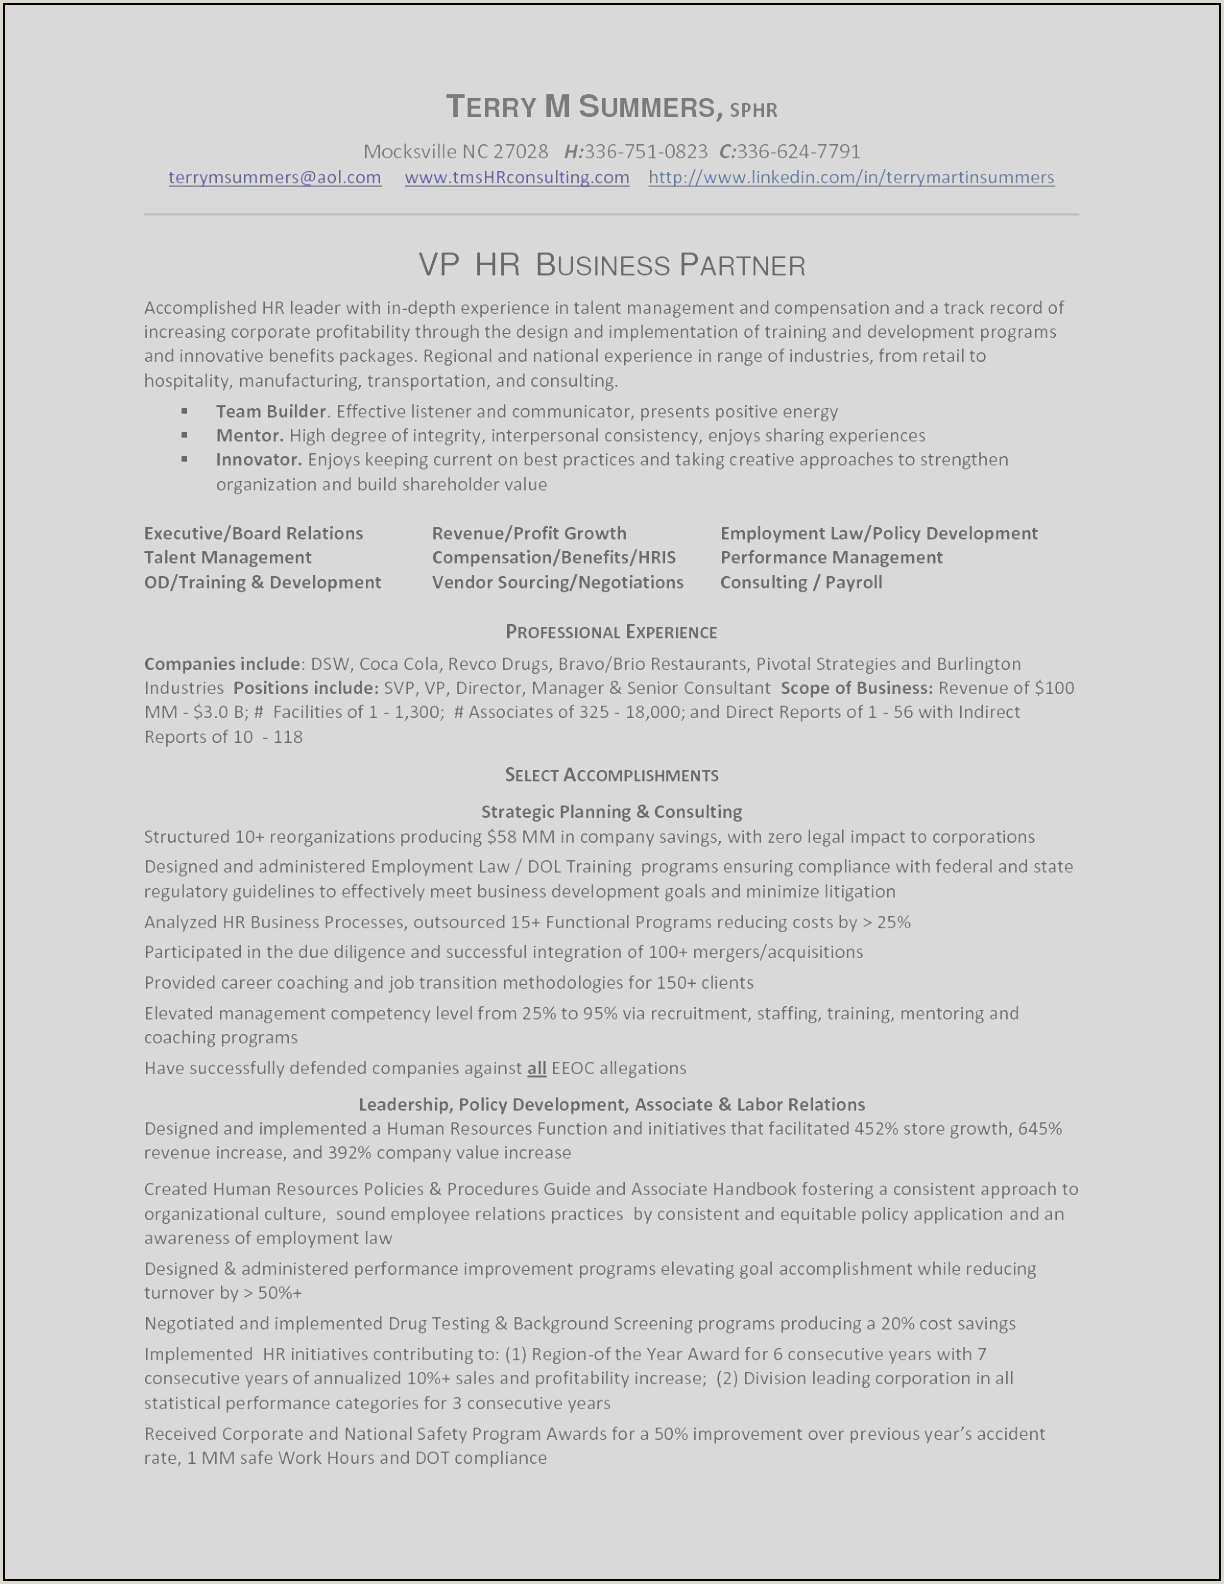 Resume format for Catering Job Sample Resume for Fresh Graduate without Work Experience